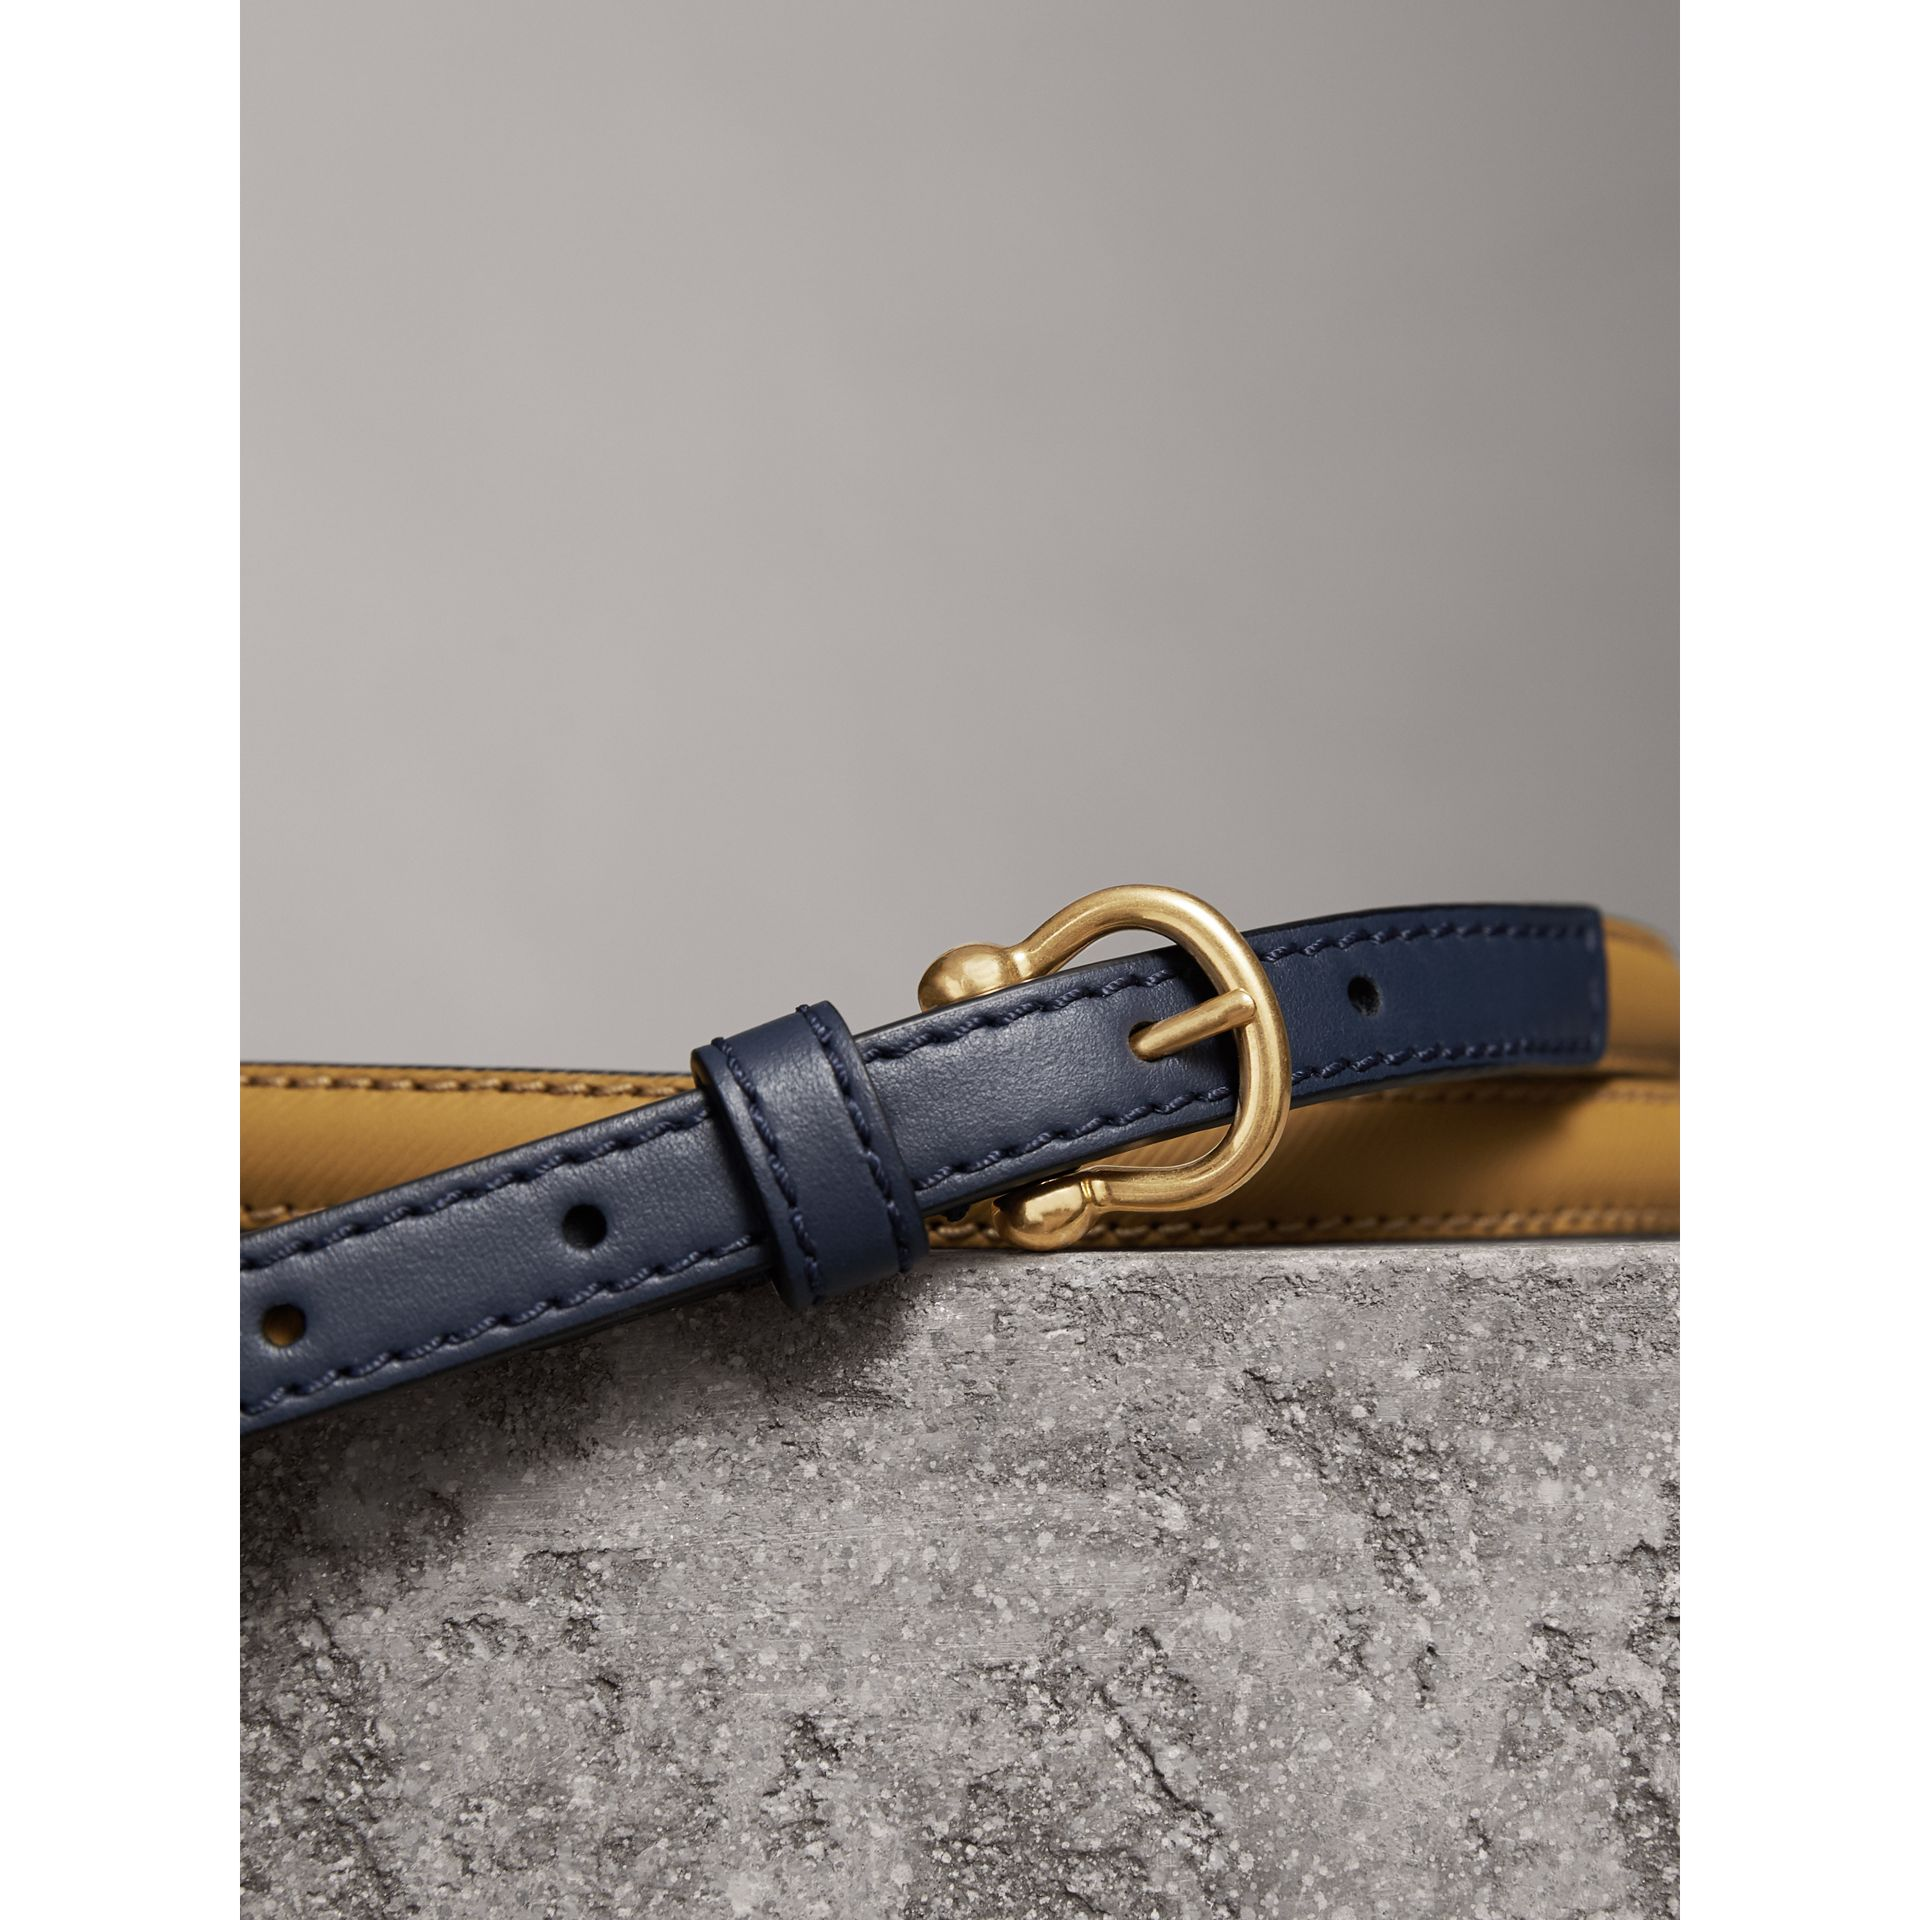 Two-tone Trench Leather Belt in Ochre Yellow / Ink Blue - Women | Burberry Hong Kong - gallery image 2